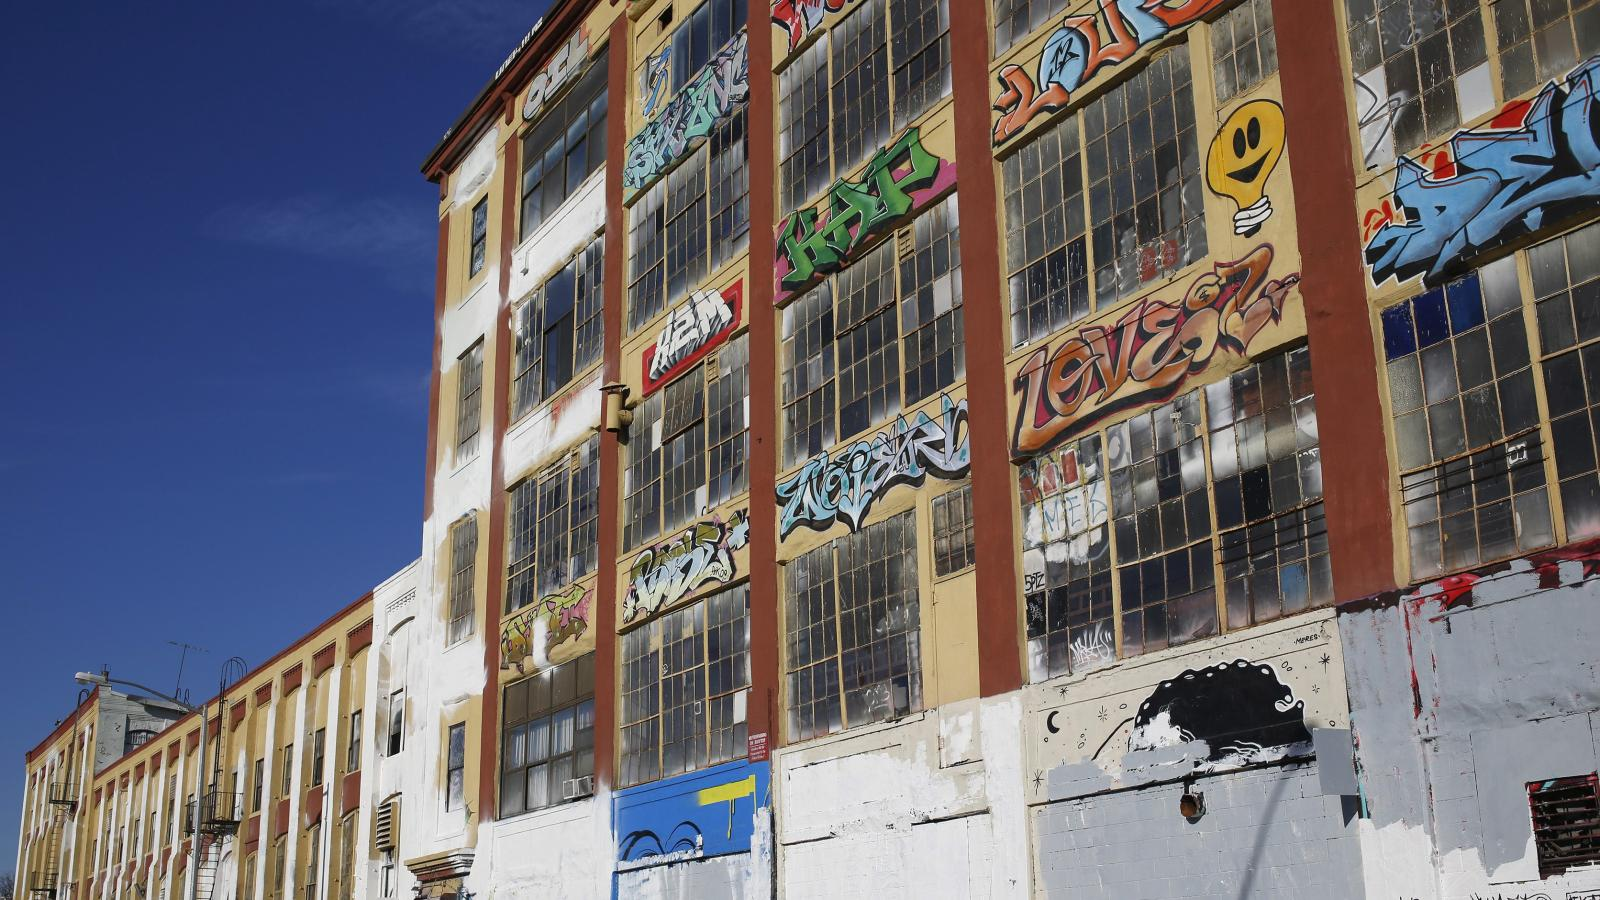 Graffiti artists could see millions after a developer painted over their work at 5pointz